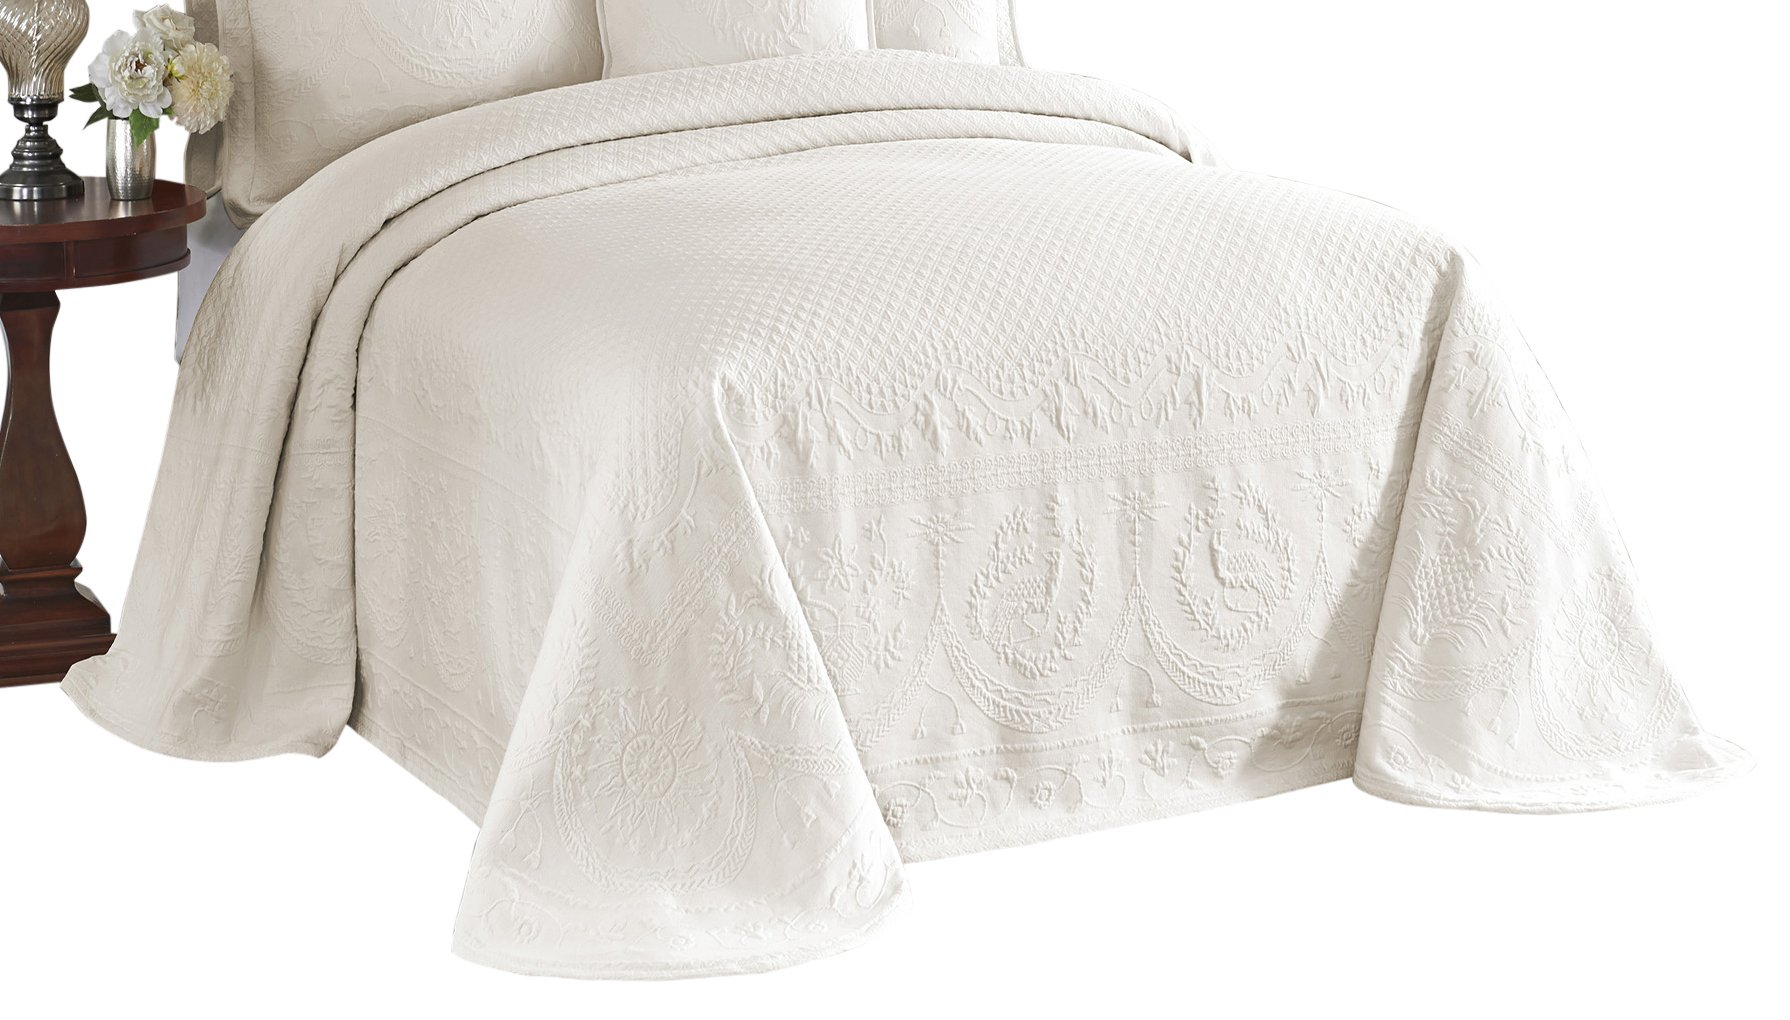 Historic Charleston 13989BEDDKNGIVY King Charles 120-Inch by 114-Inch Matelasse King Bedspread, Ivory